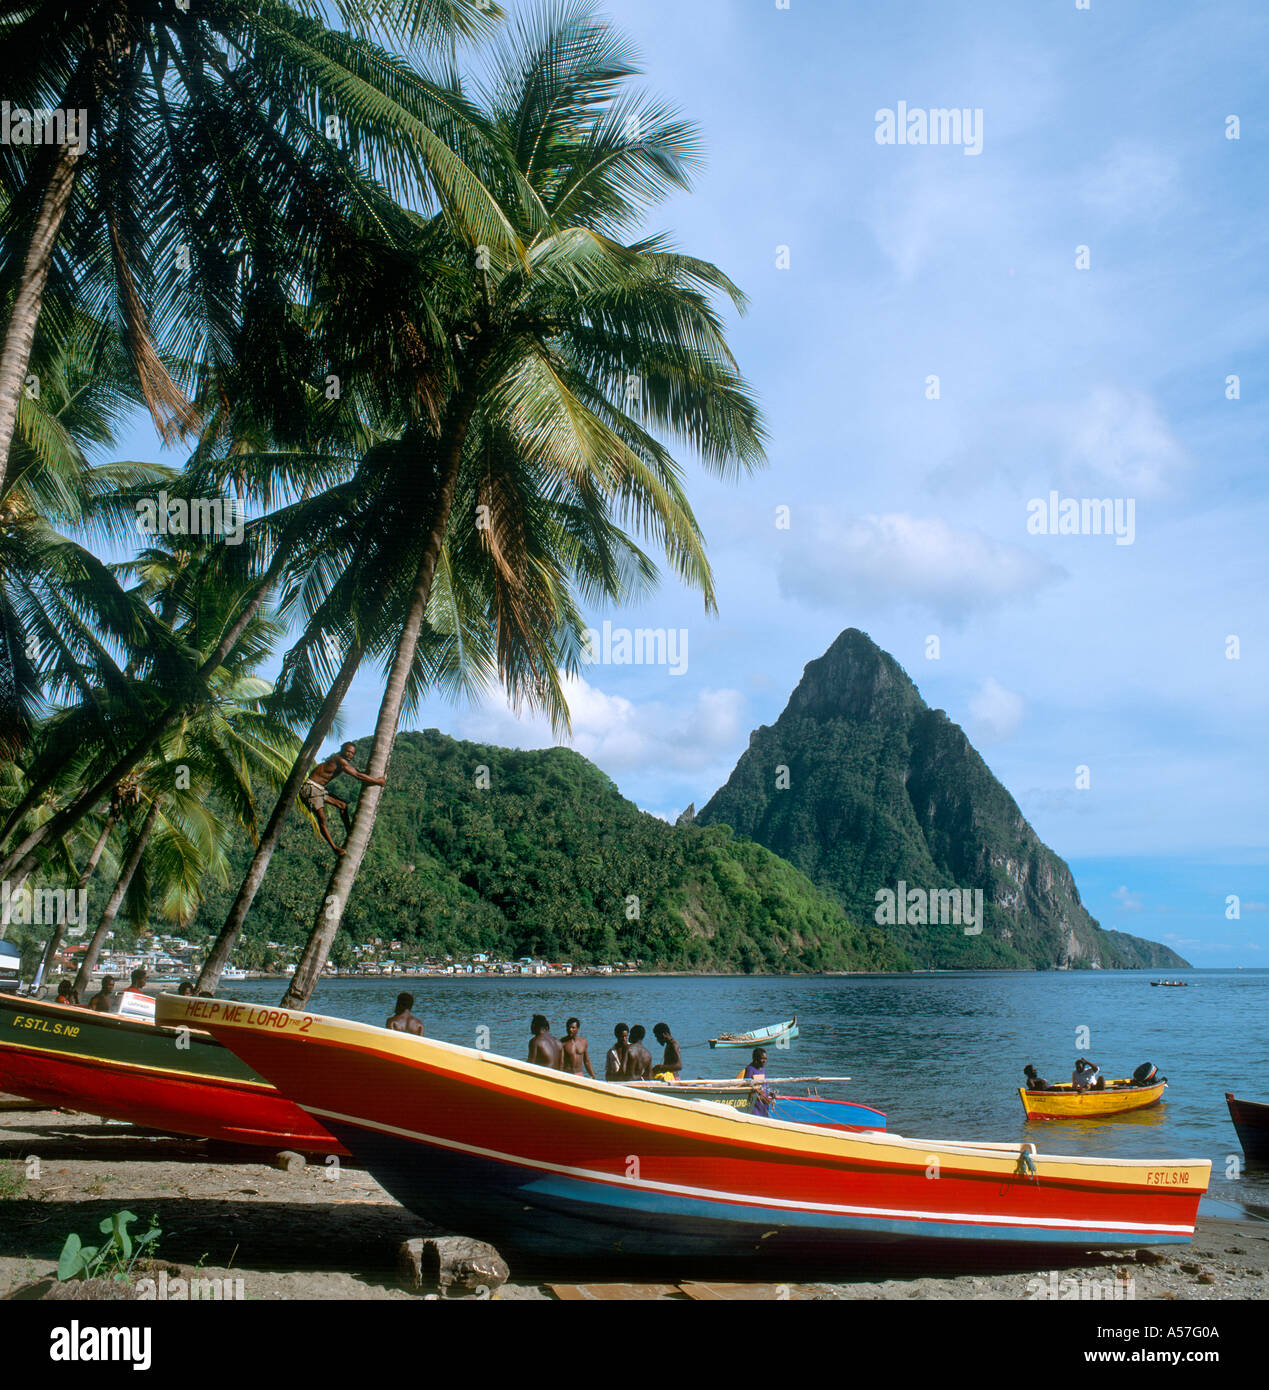 Petit Piton, The Pitons, Soufriere, St Lucia, West Indies, Caribbean - Stock Image